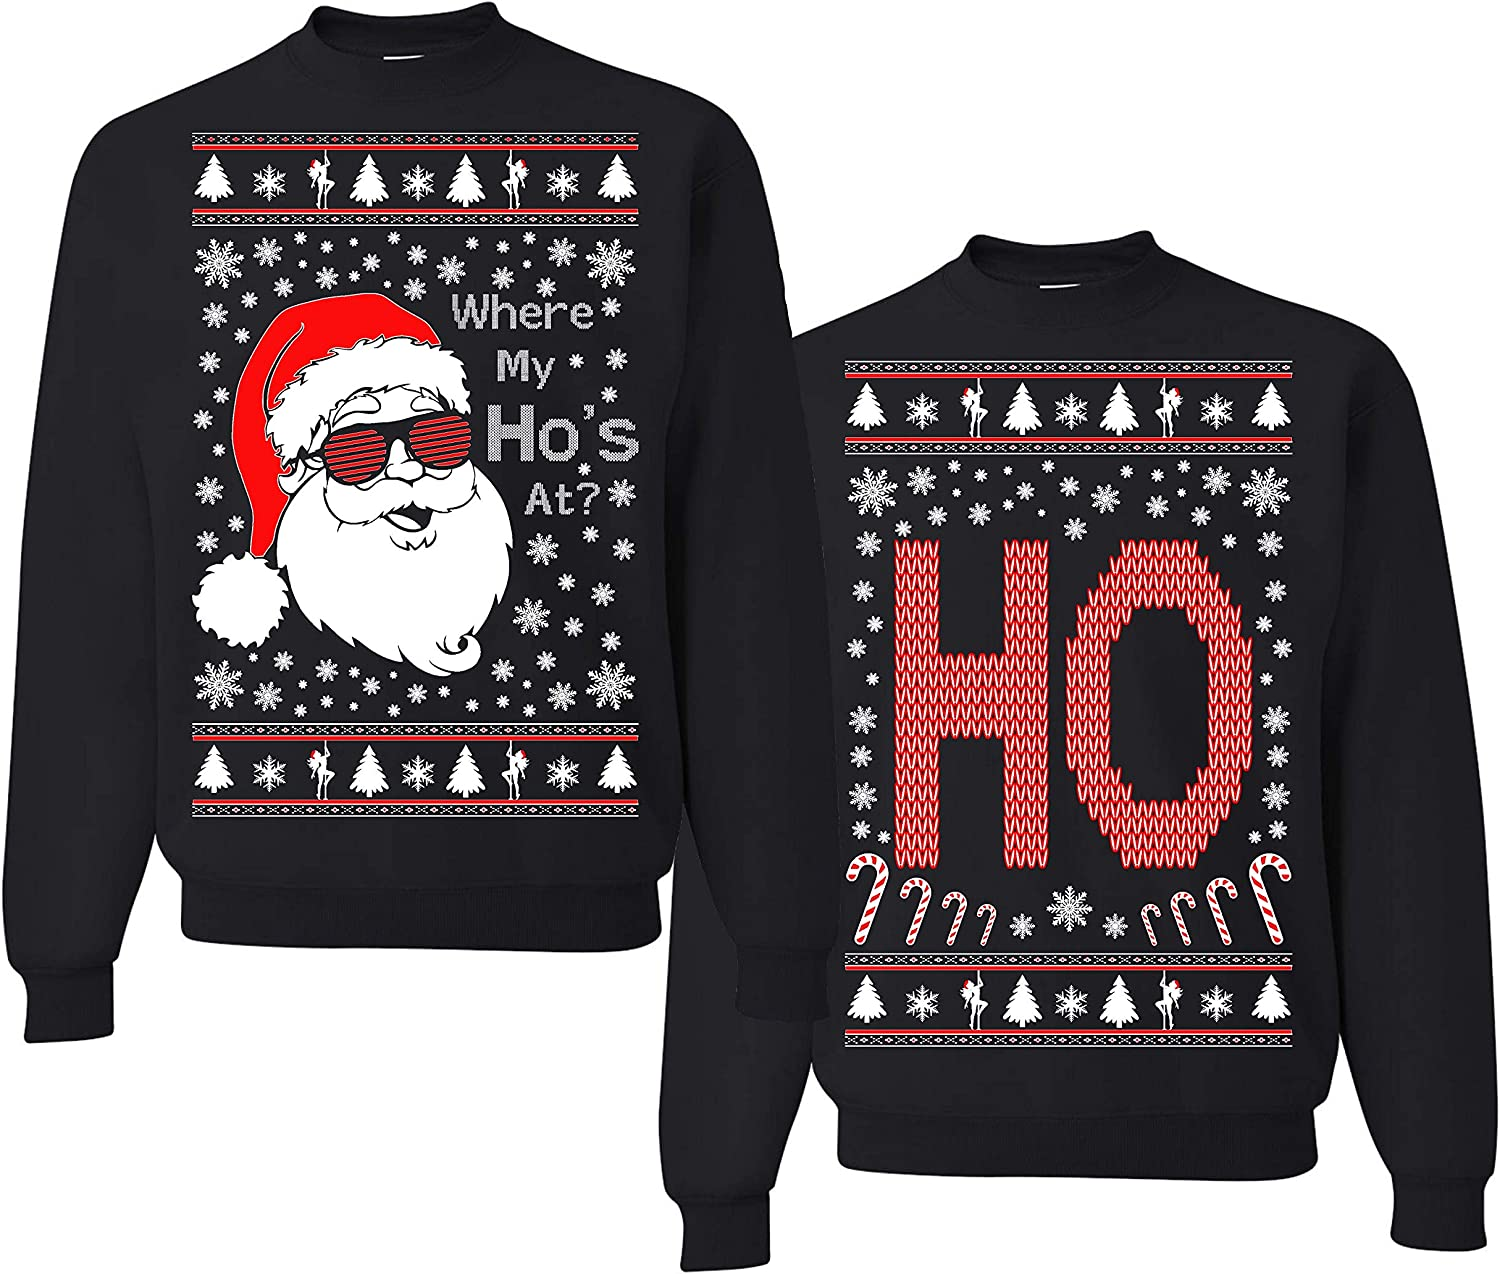 Funny Christmas Sewing Ugly Xmas Sweater Sweatshirt Let it Sew